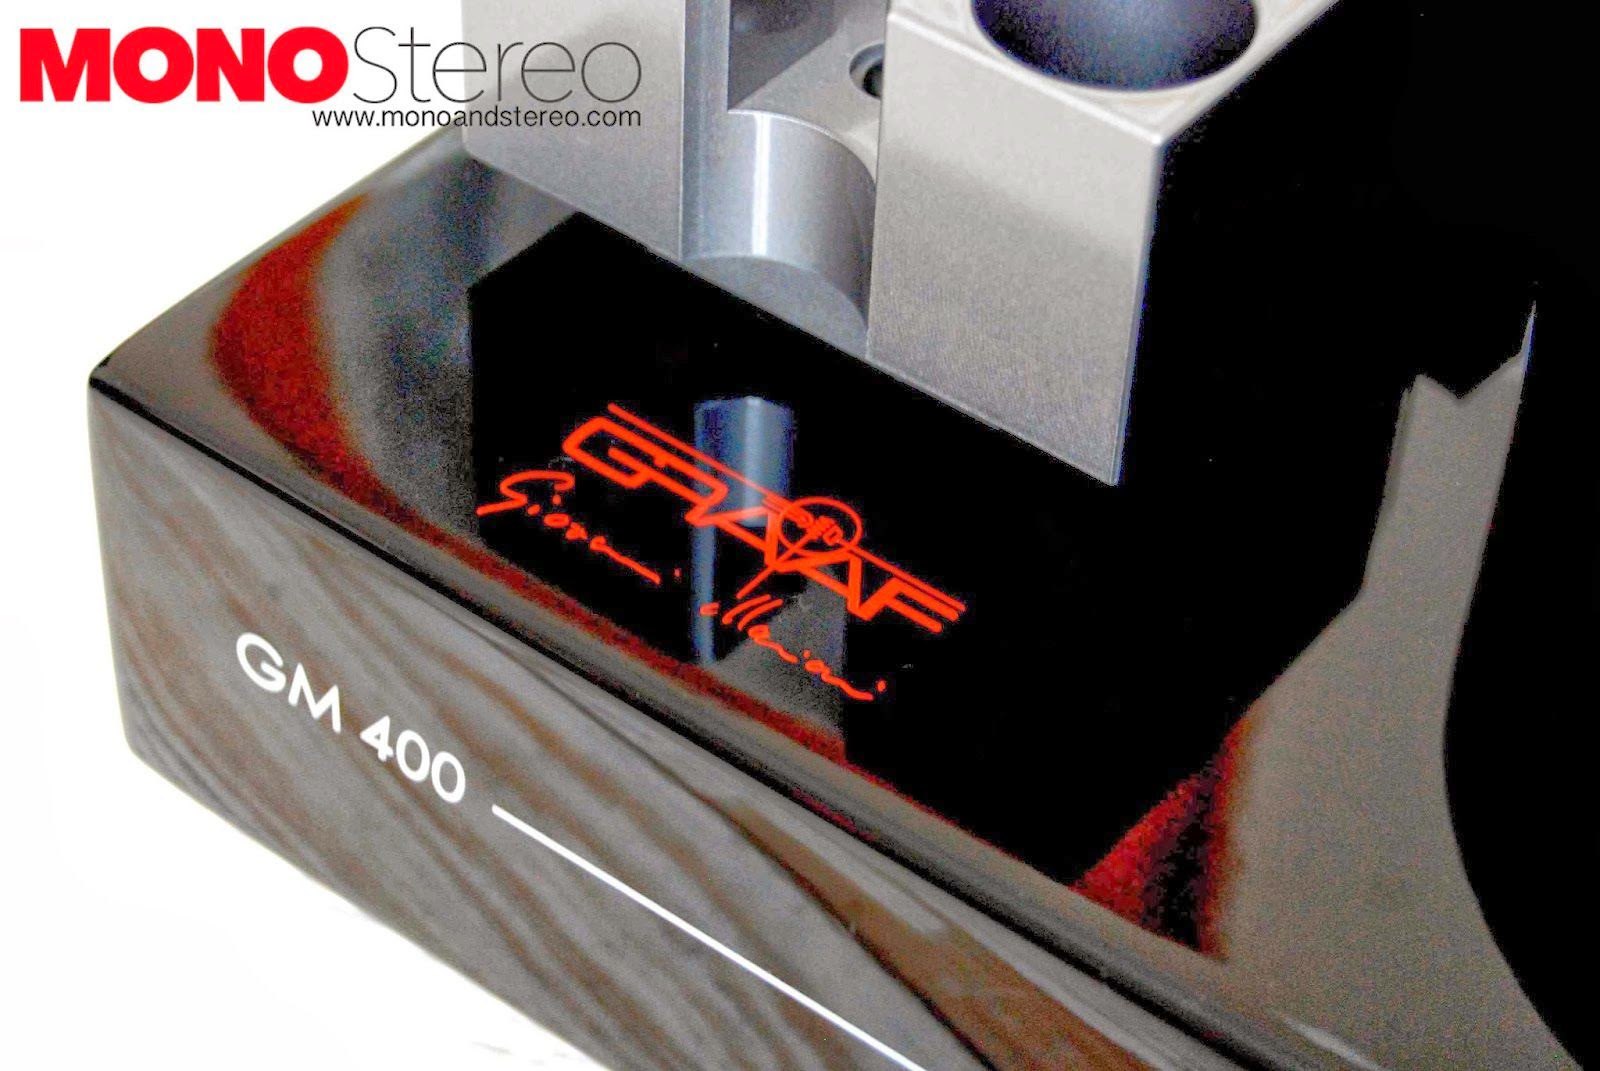 mono and stereo high end audio magazine graaf gm power graaf gm 400 power amplifier review